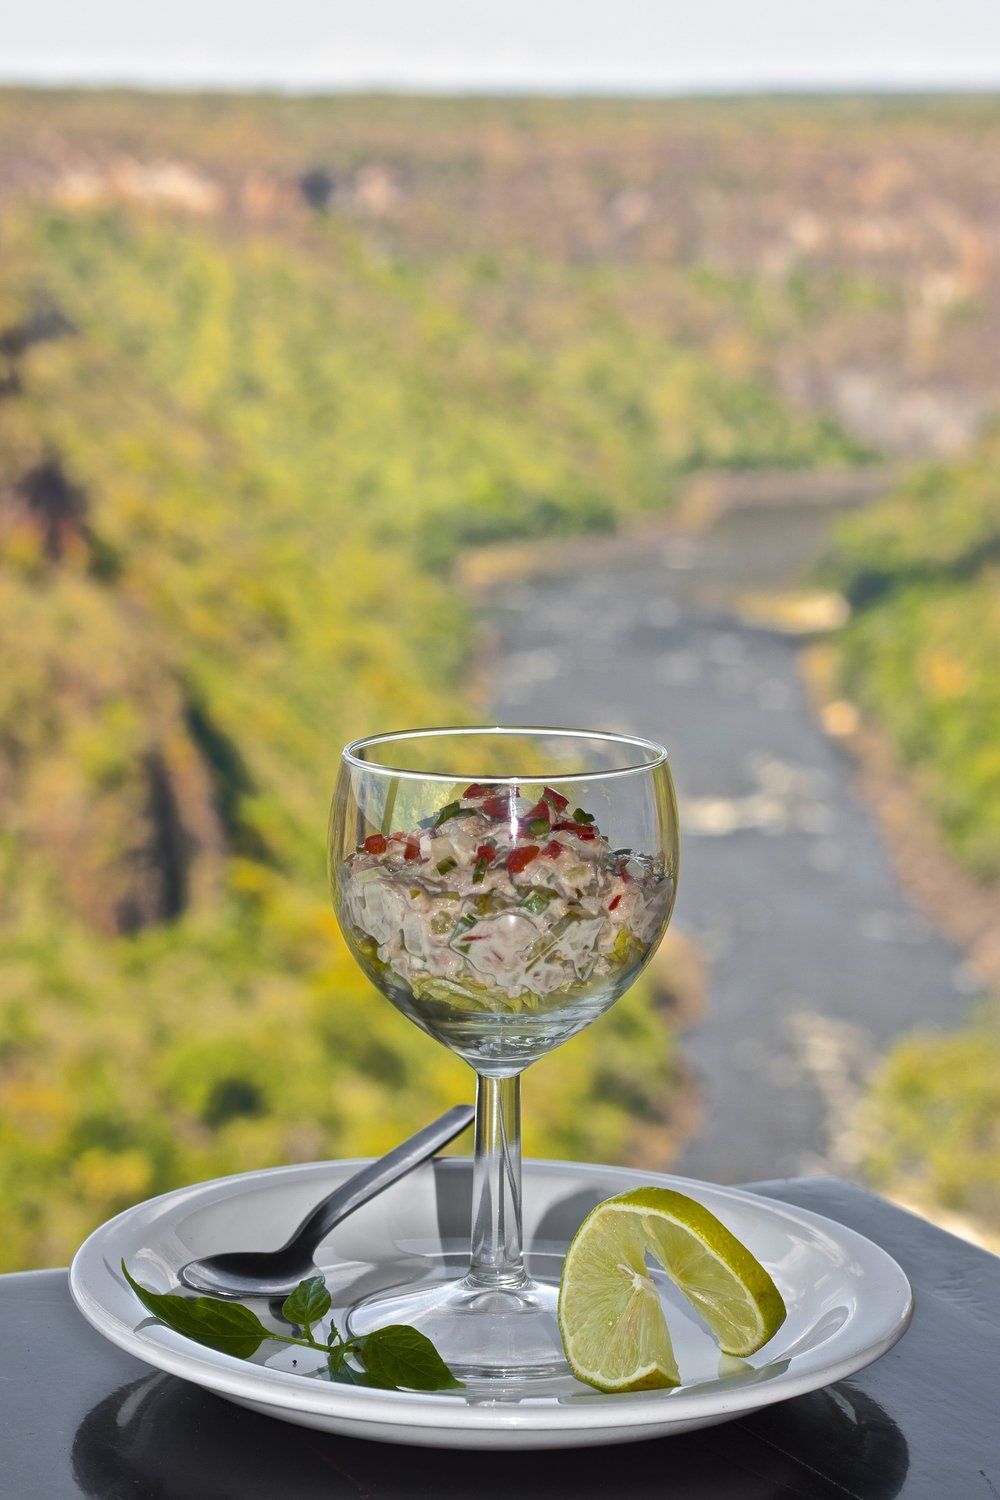 24. Imvelo Safari Lodges - Gorges Lodge - Lunch time starter and a view.jpg